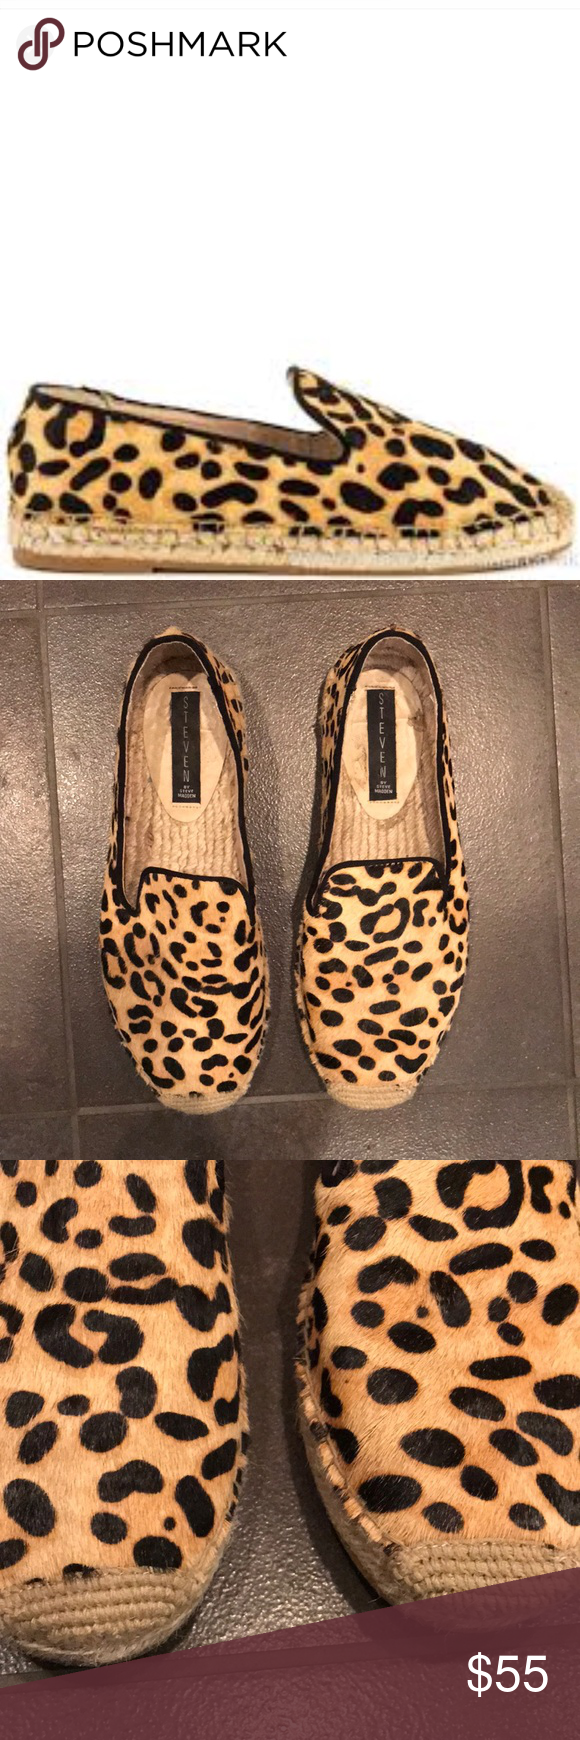 bc5c1176a4f Steven-Steve Madden LAN II Leopard Print Slip On LAN II Leopard print Slip  on Shoe! Great for spring summer!!!! Real calf hair with leather lining!